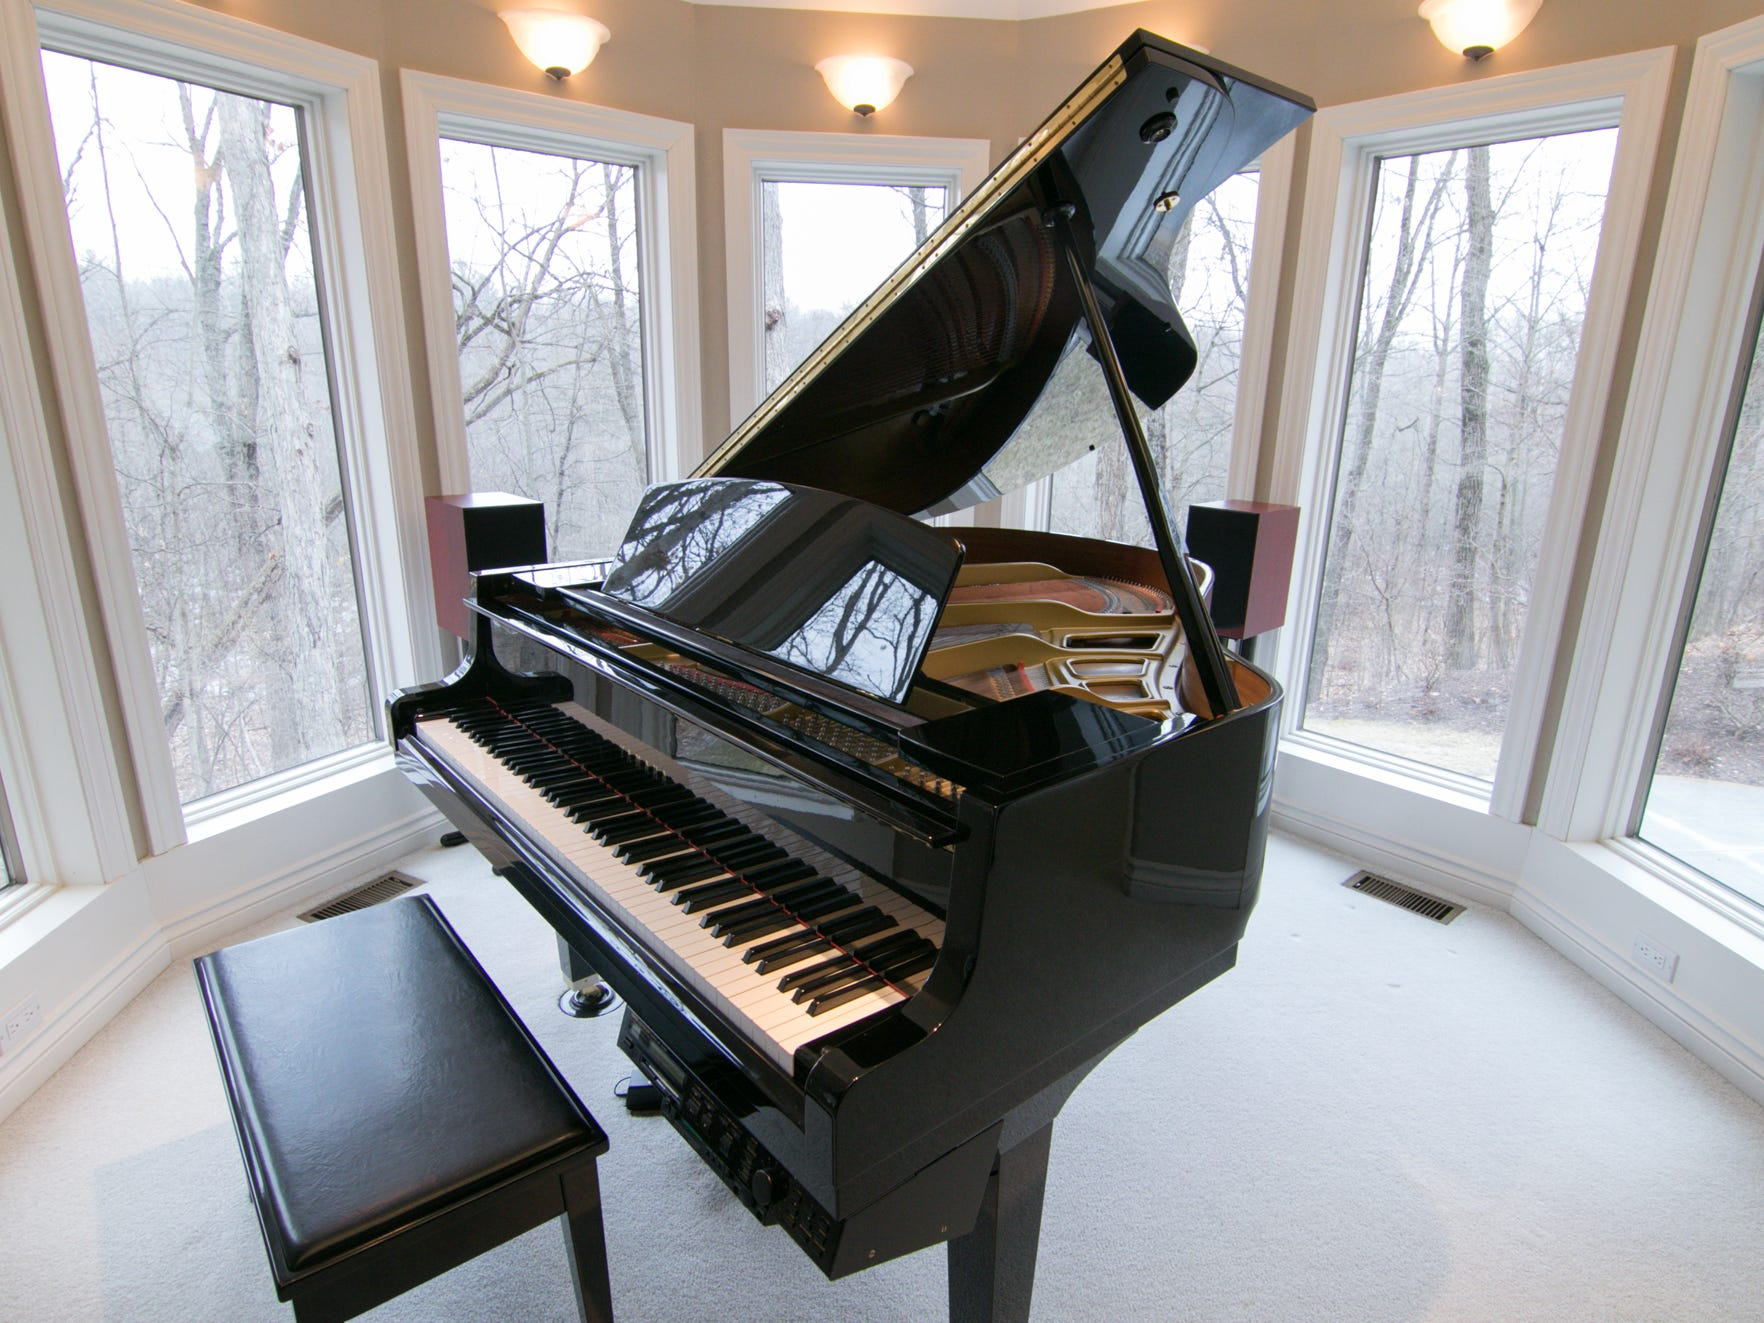 A grand piano is framed in an ideal location, one of a number of alcoves in the Cross Creek Drive home, shown Thursday, Jan. 17, 2019.